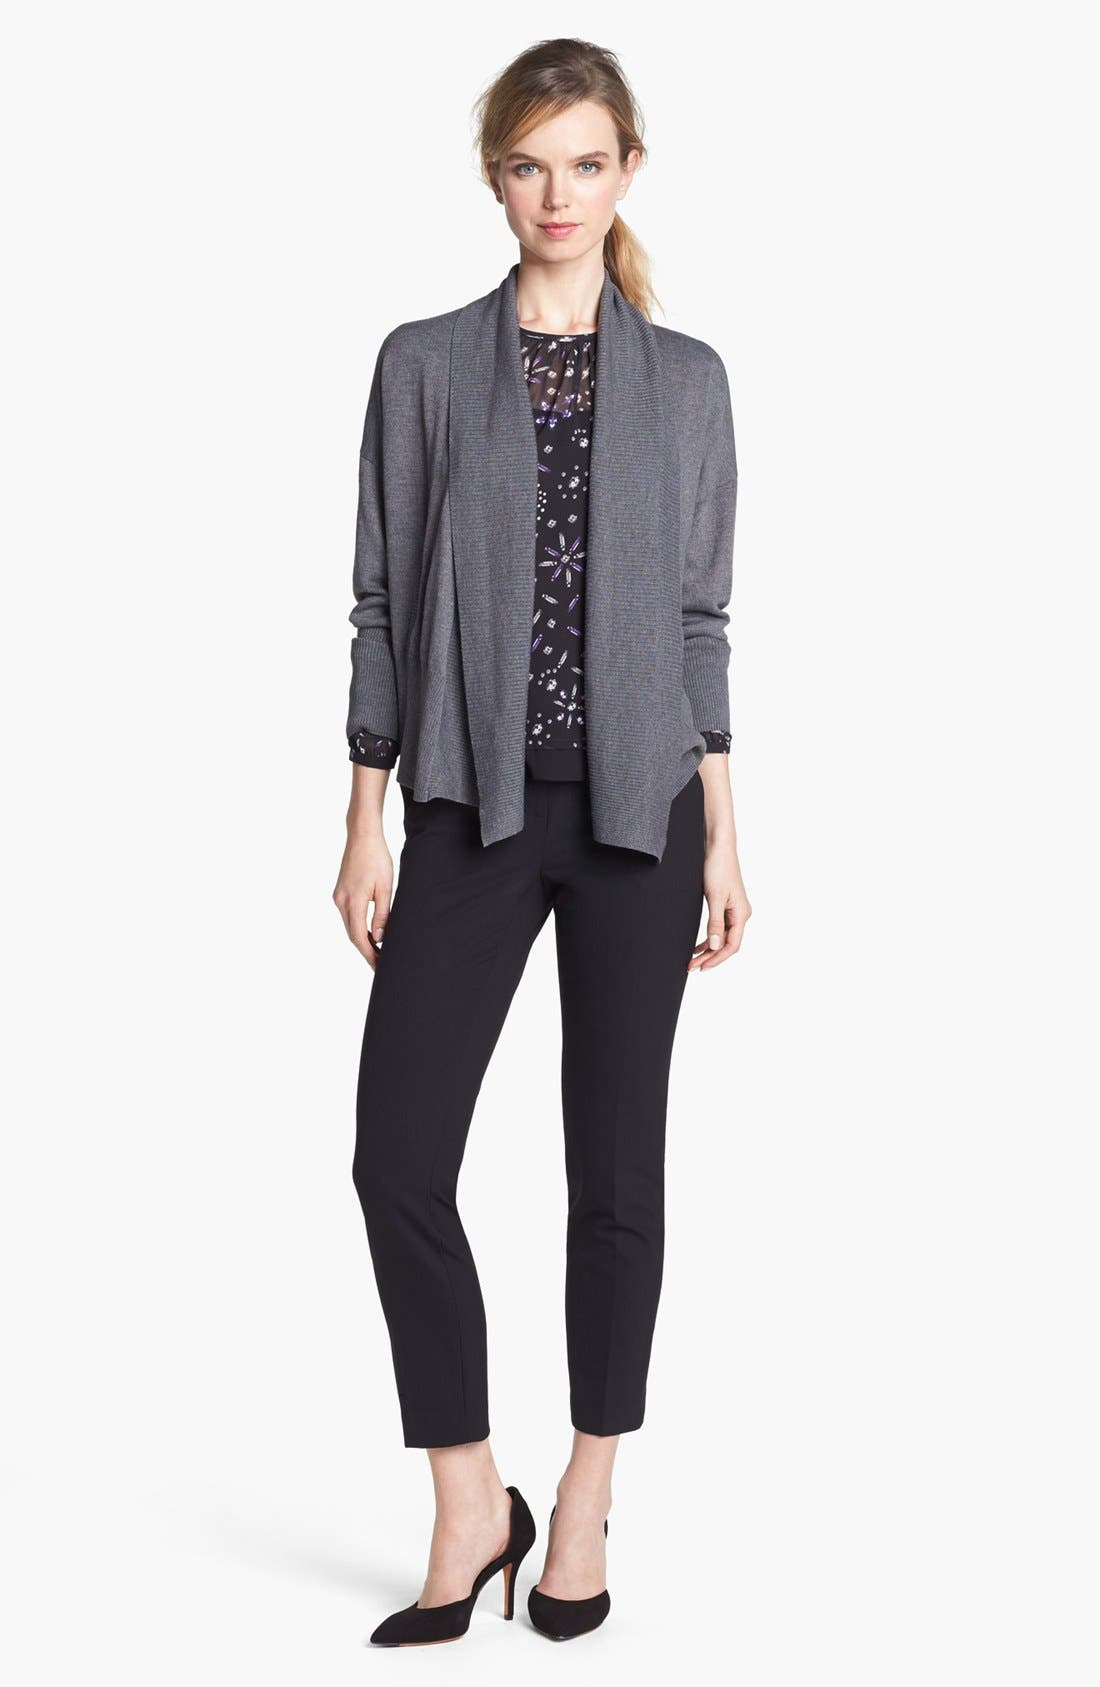 Alternate Image 1 Selected - Vince Camuto Shawl Collar Open Cardigan (Online Only)